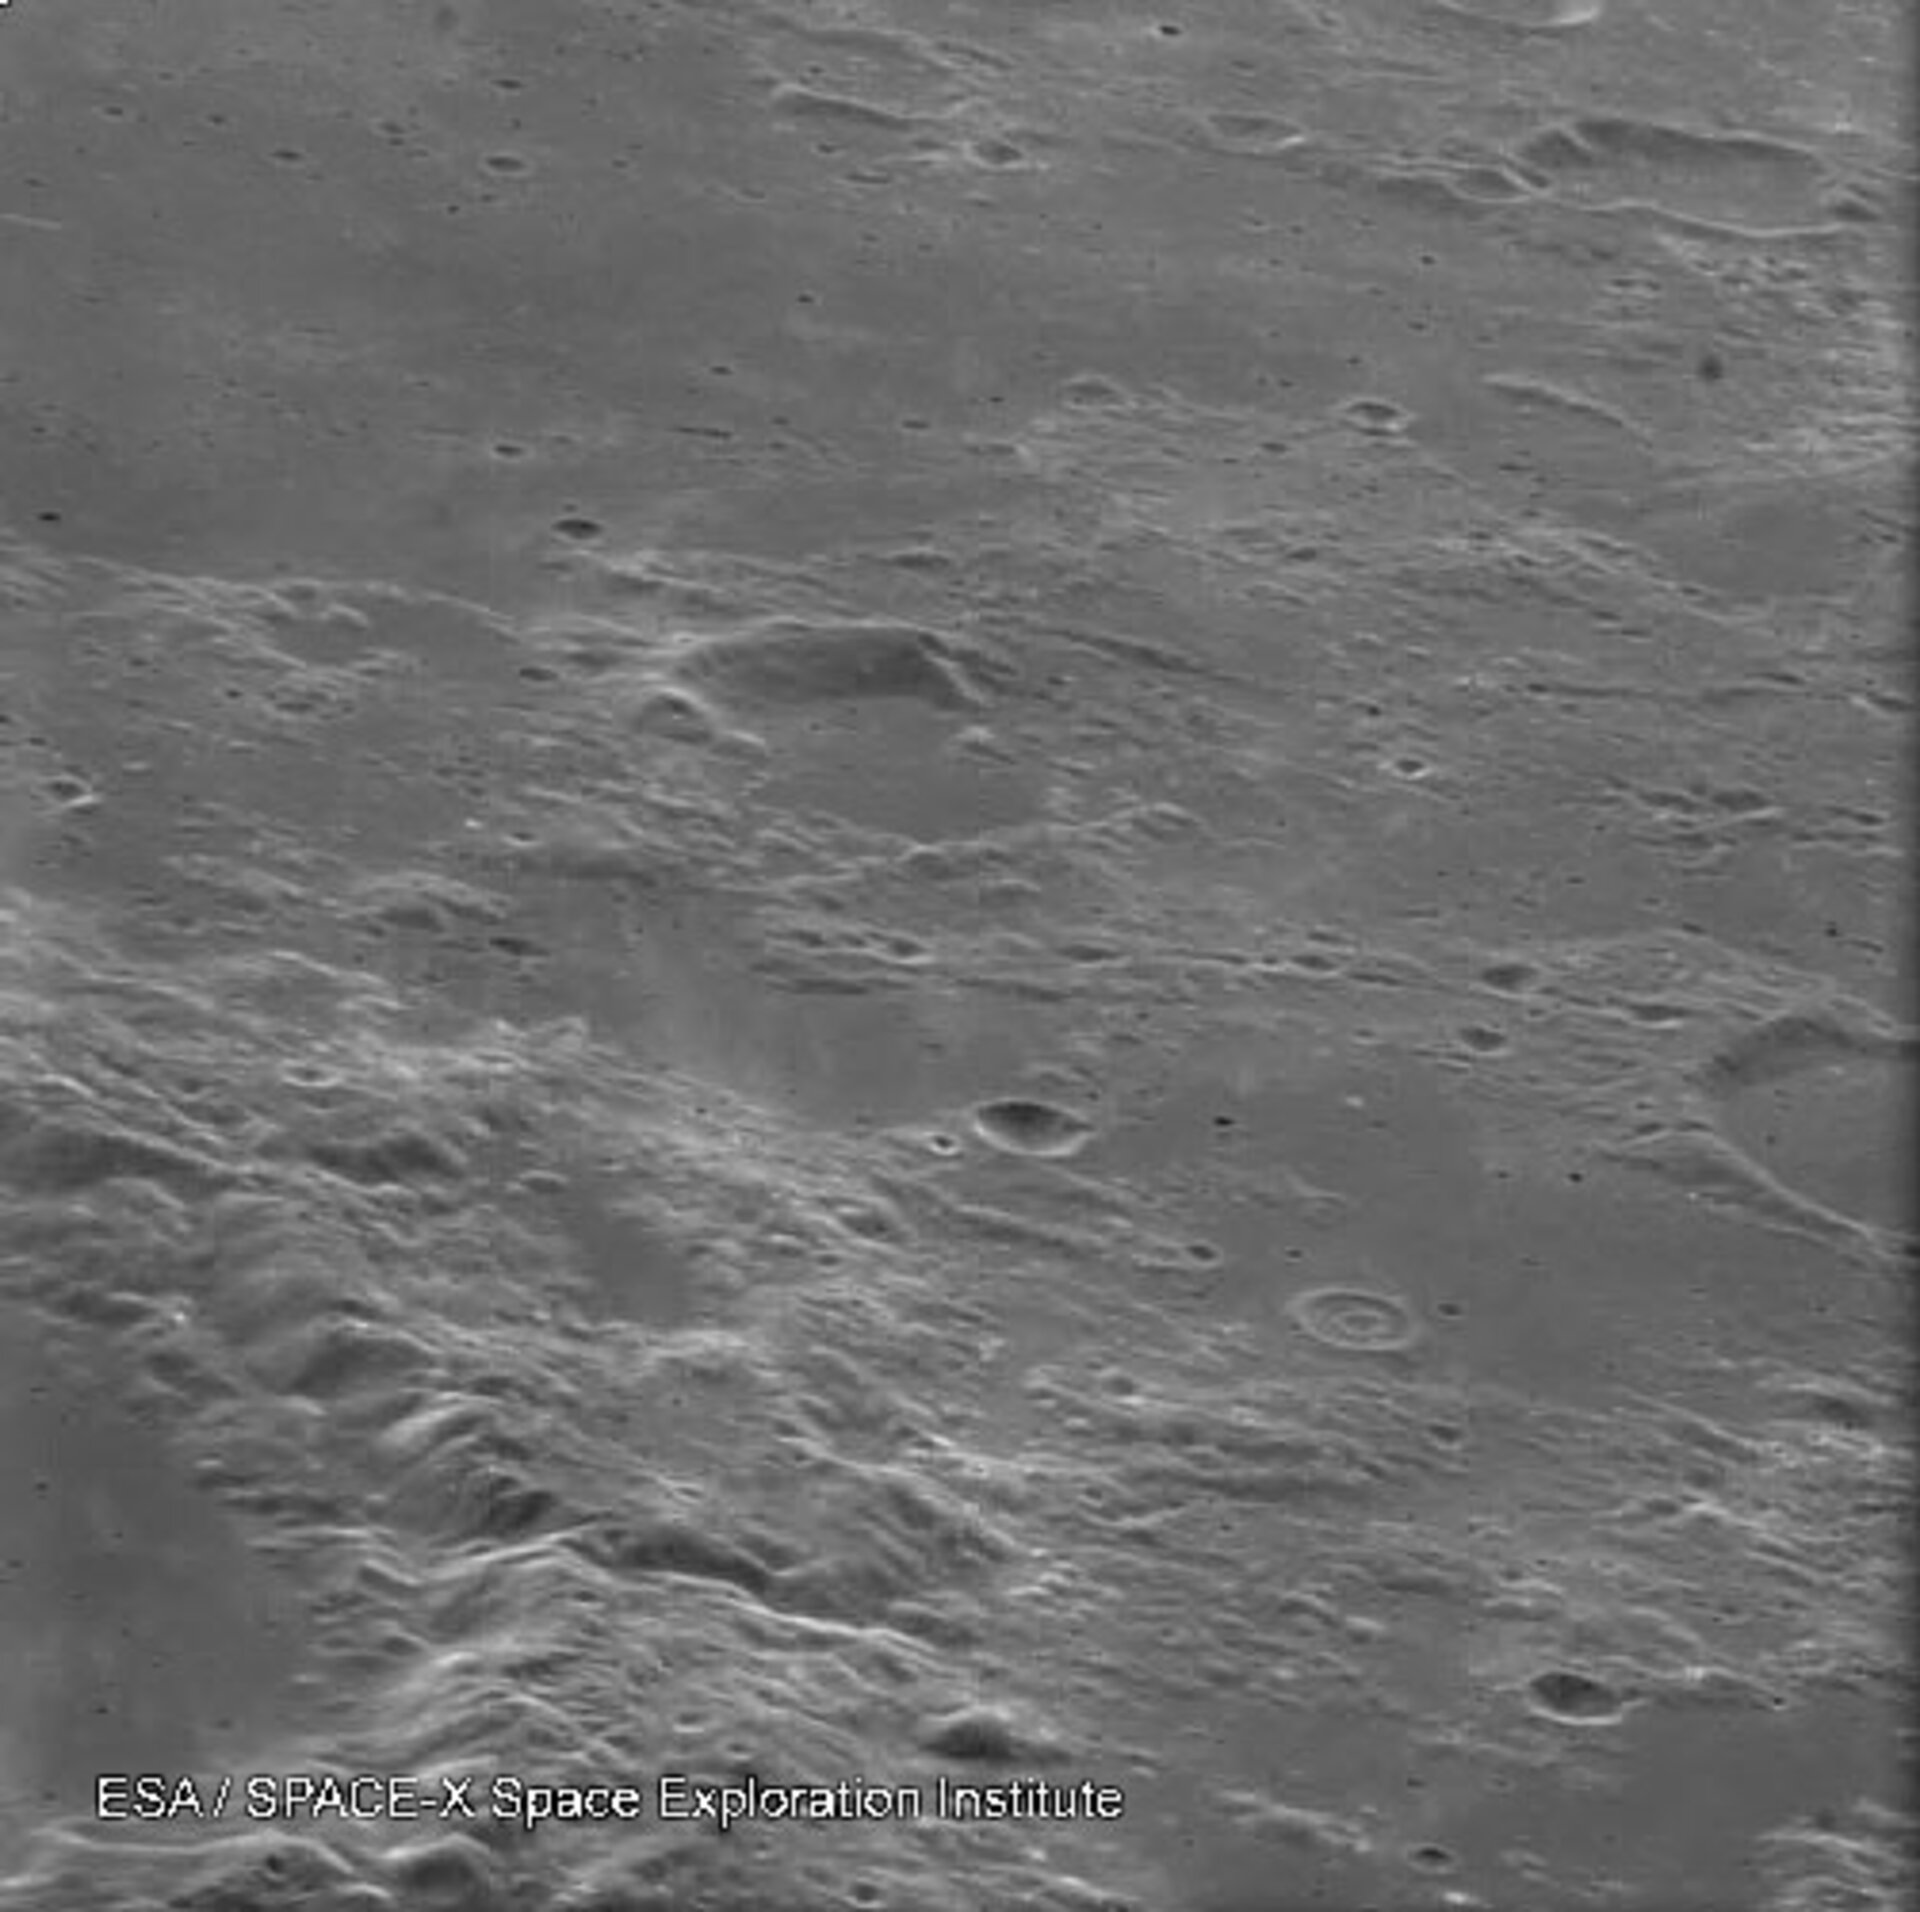 SMART-1 view of lunar surface